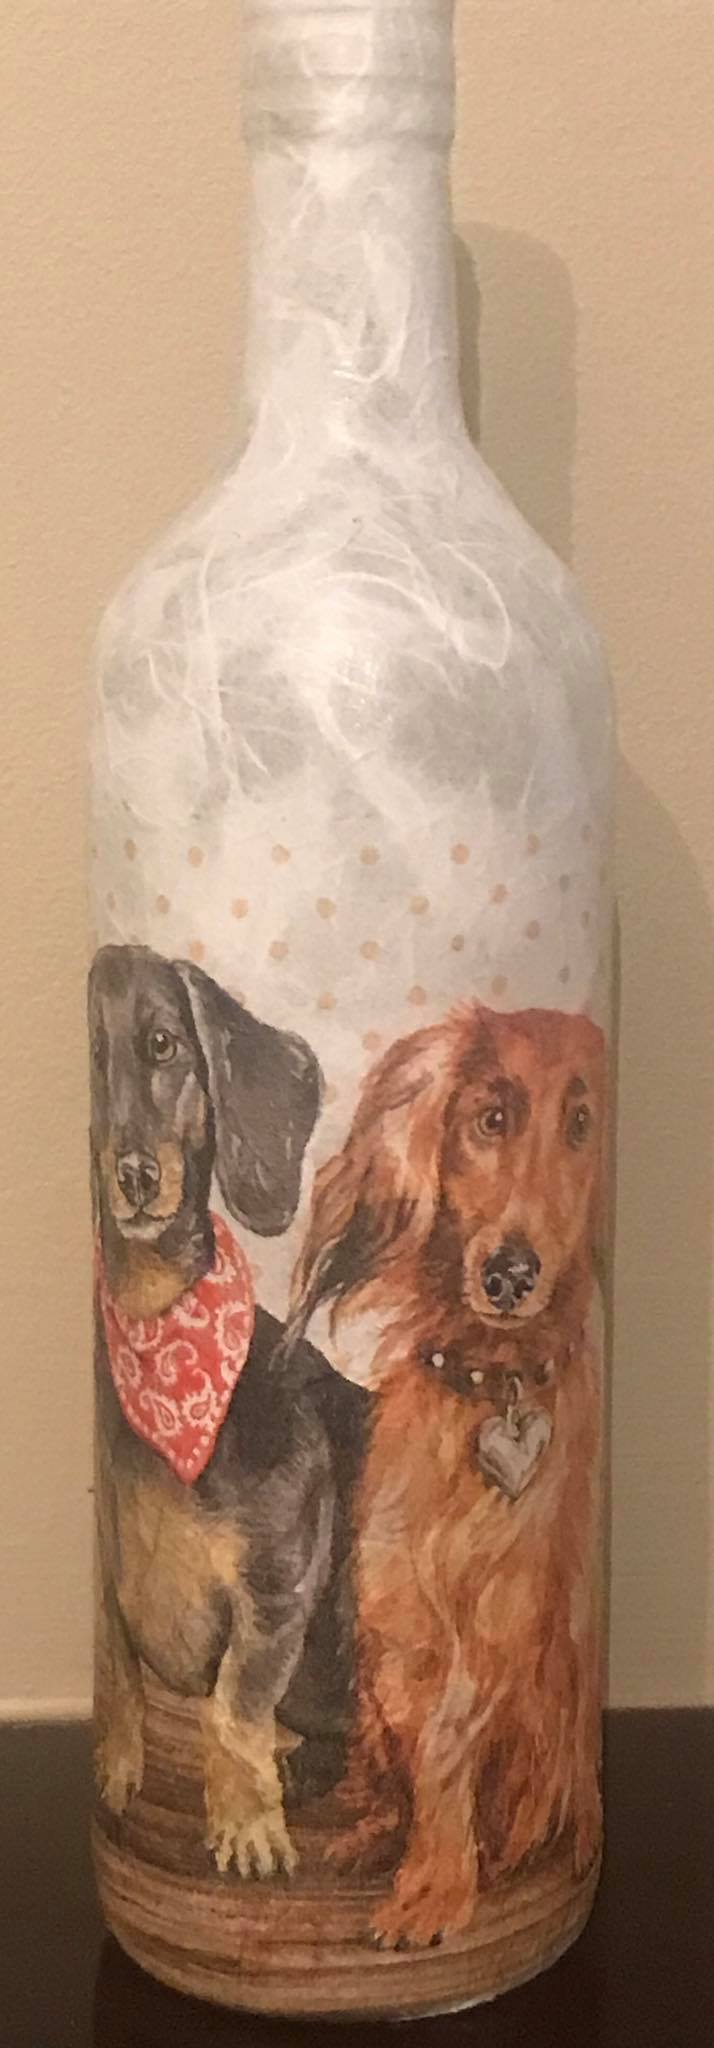 Dogs Light Up Bottles